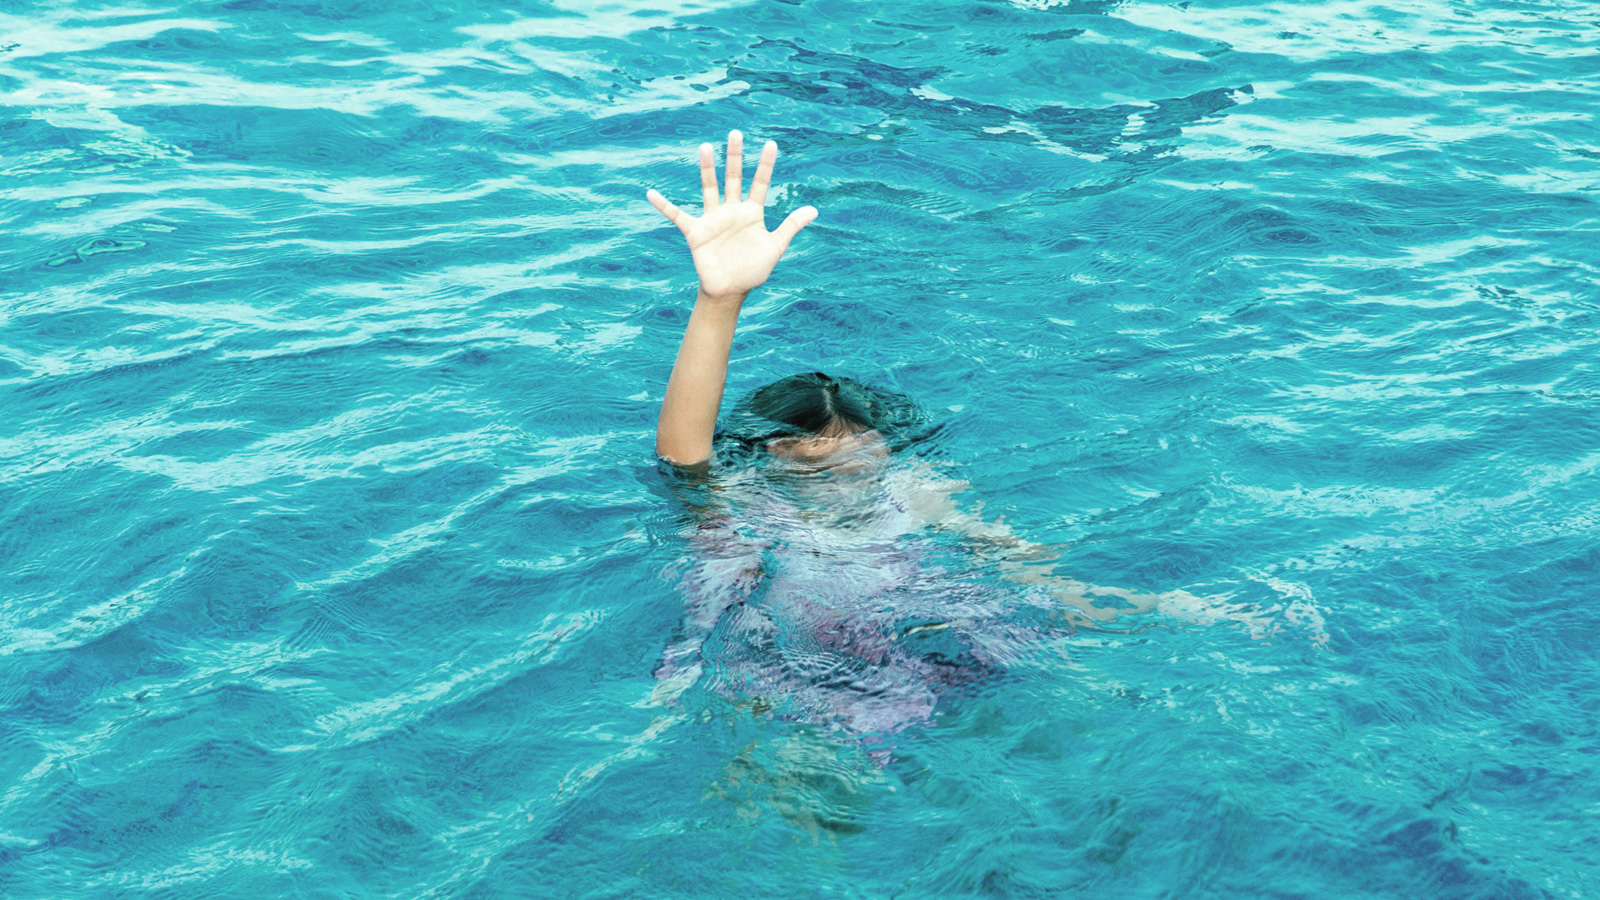 Emergency! - Drowning - TODAYonline